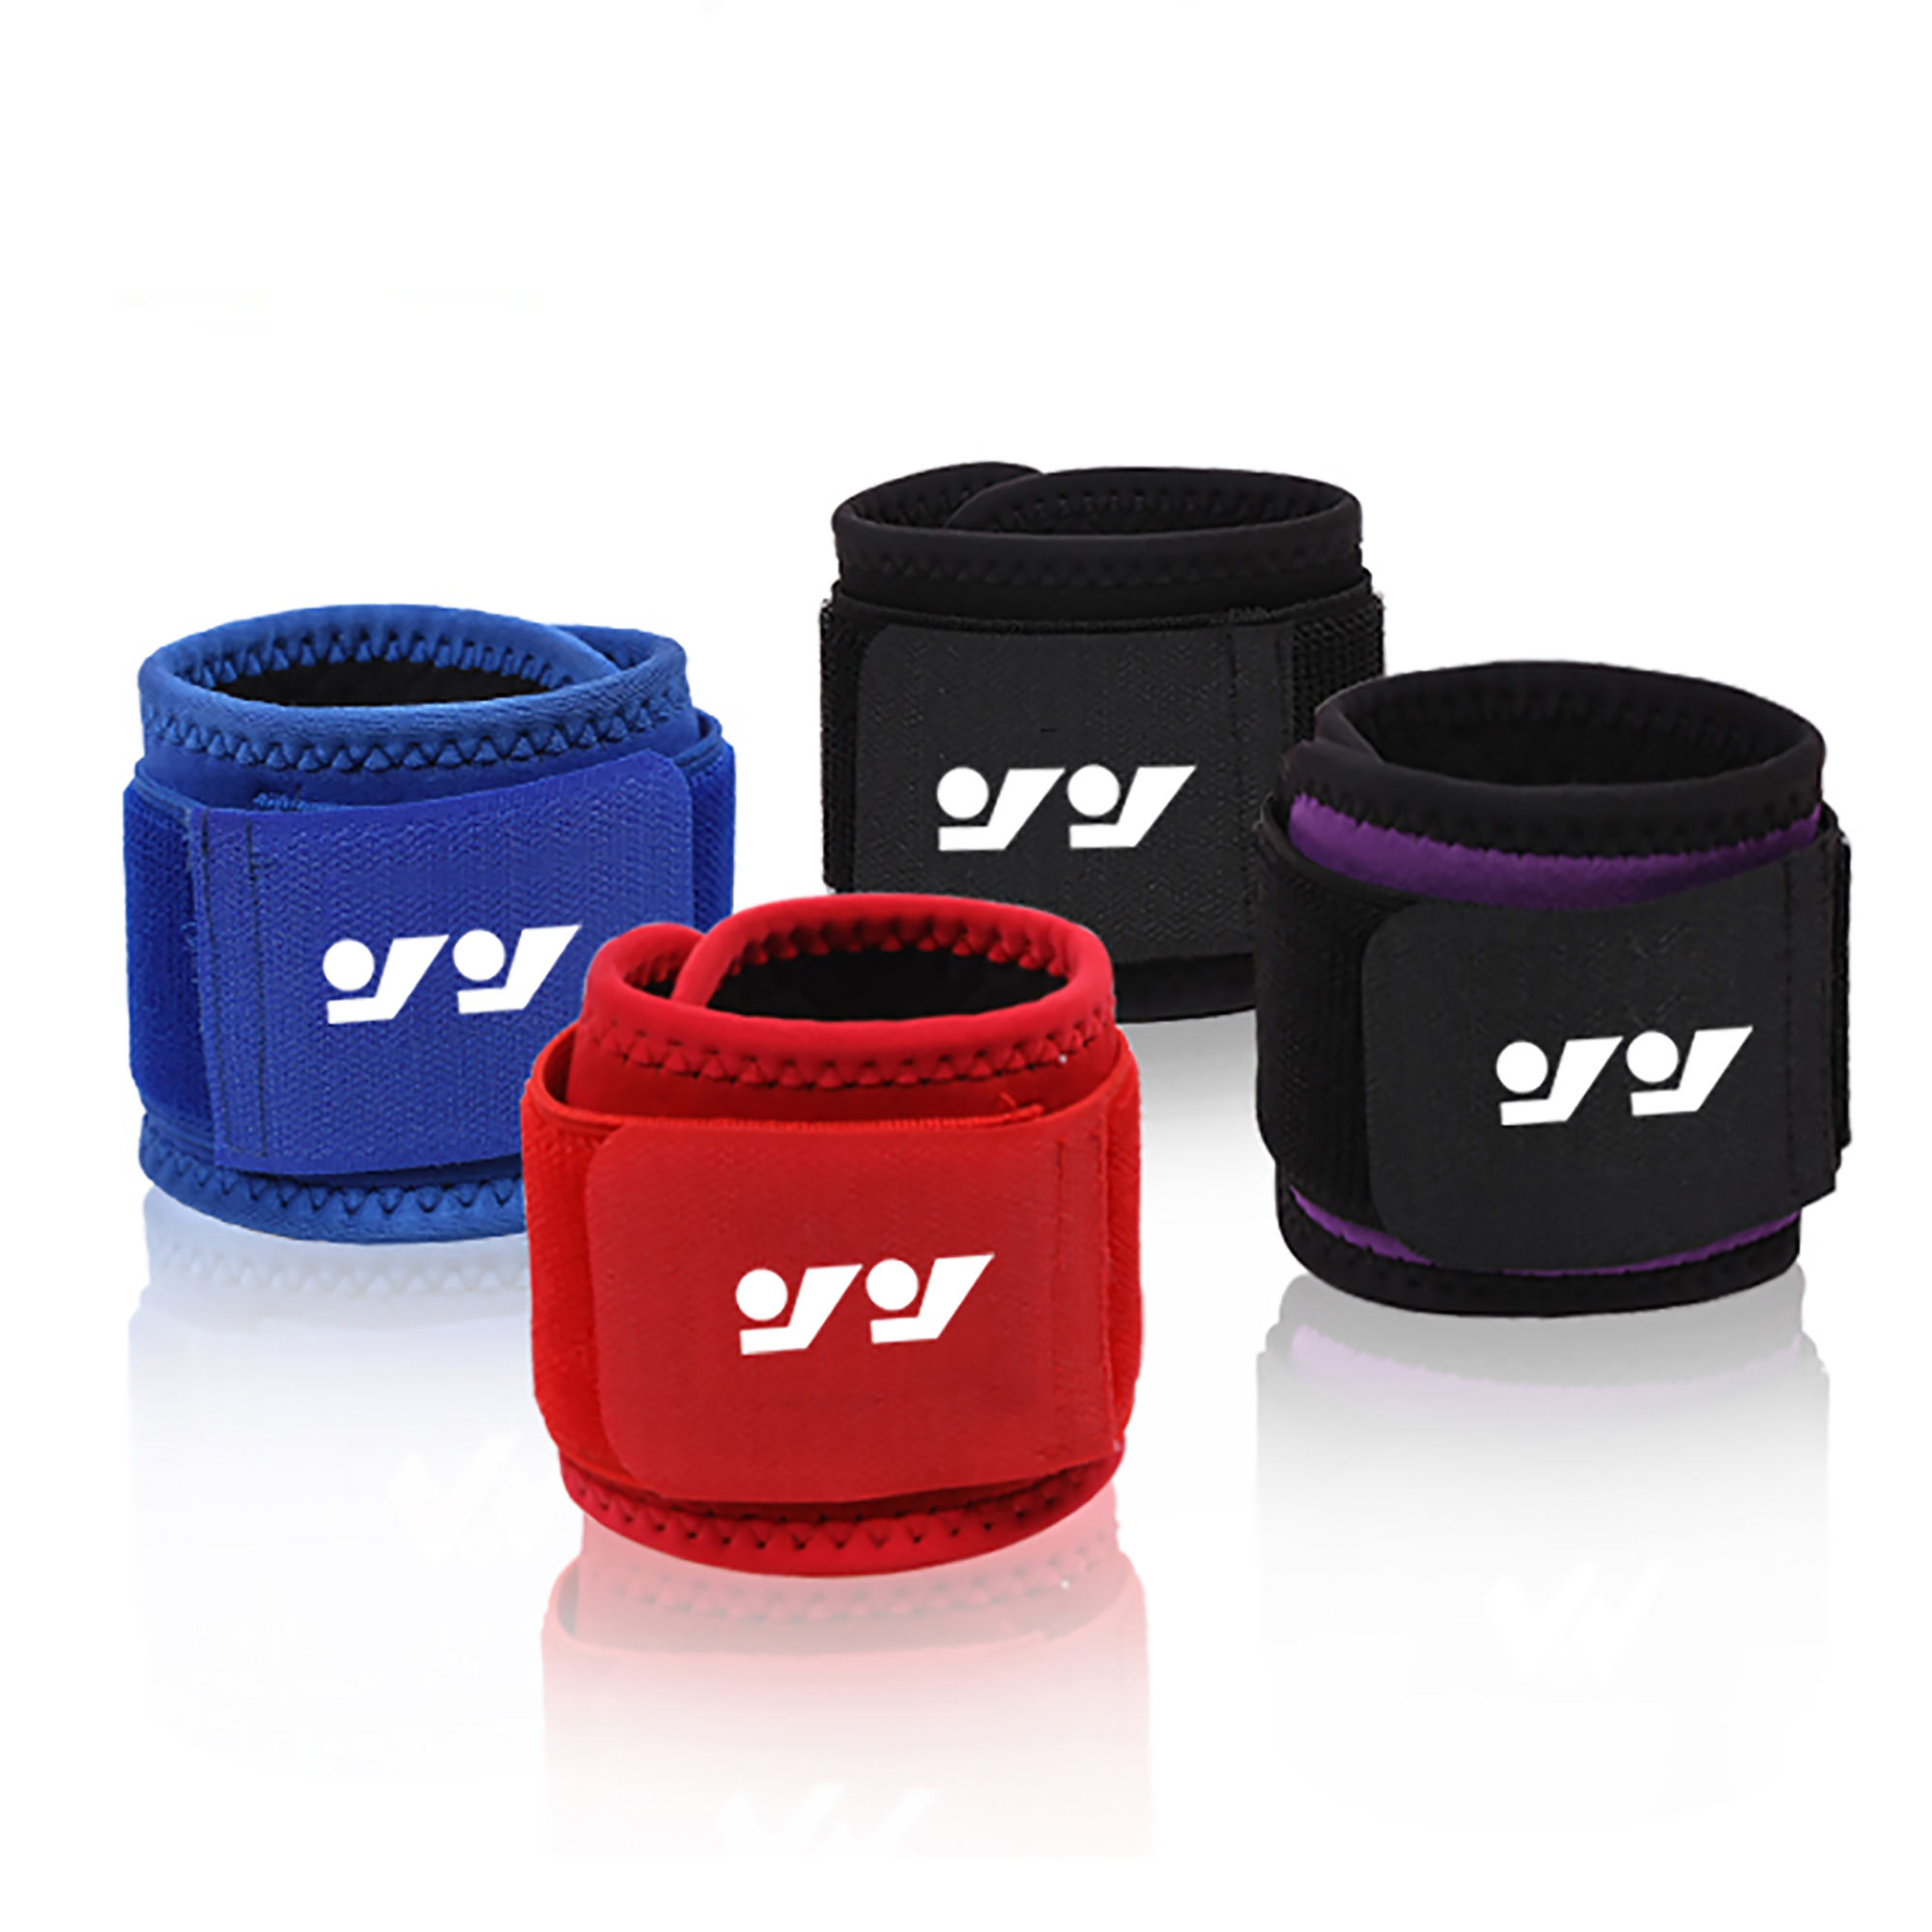 Professional weight lifting wrist support wraps neoprene wrist strap for gym